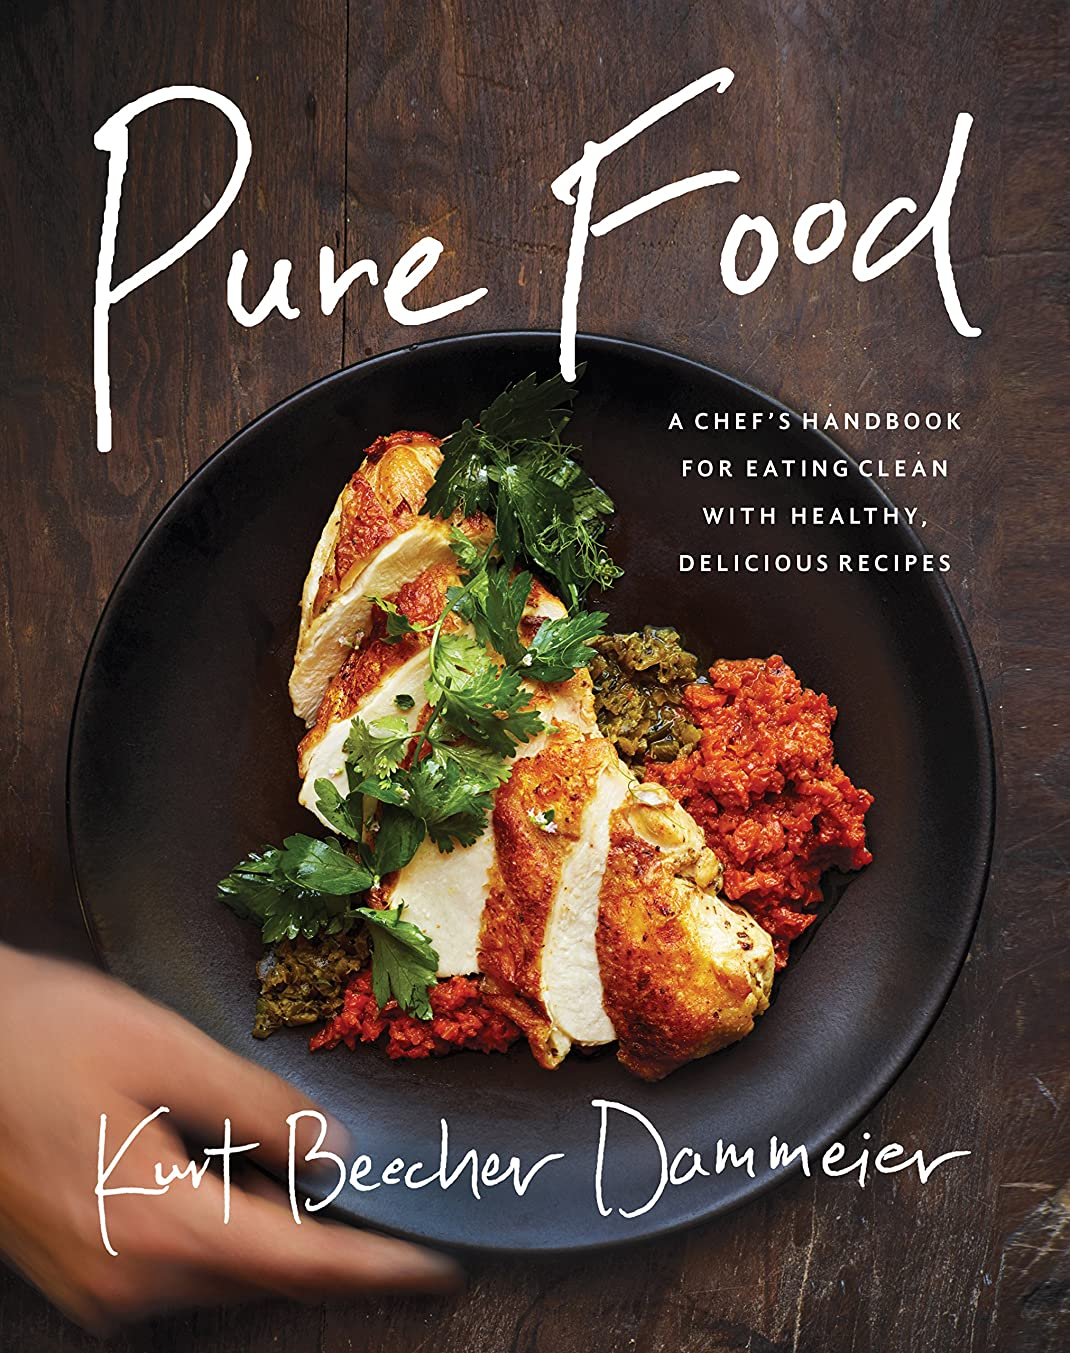 関係昨日アクセサリーPure Food: A Chef's Handbook for Eating Clean, with Healthy, Delicious Recipes (English Edition)